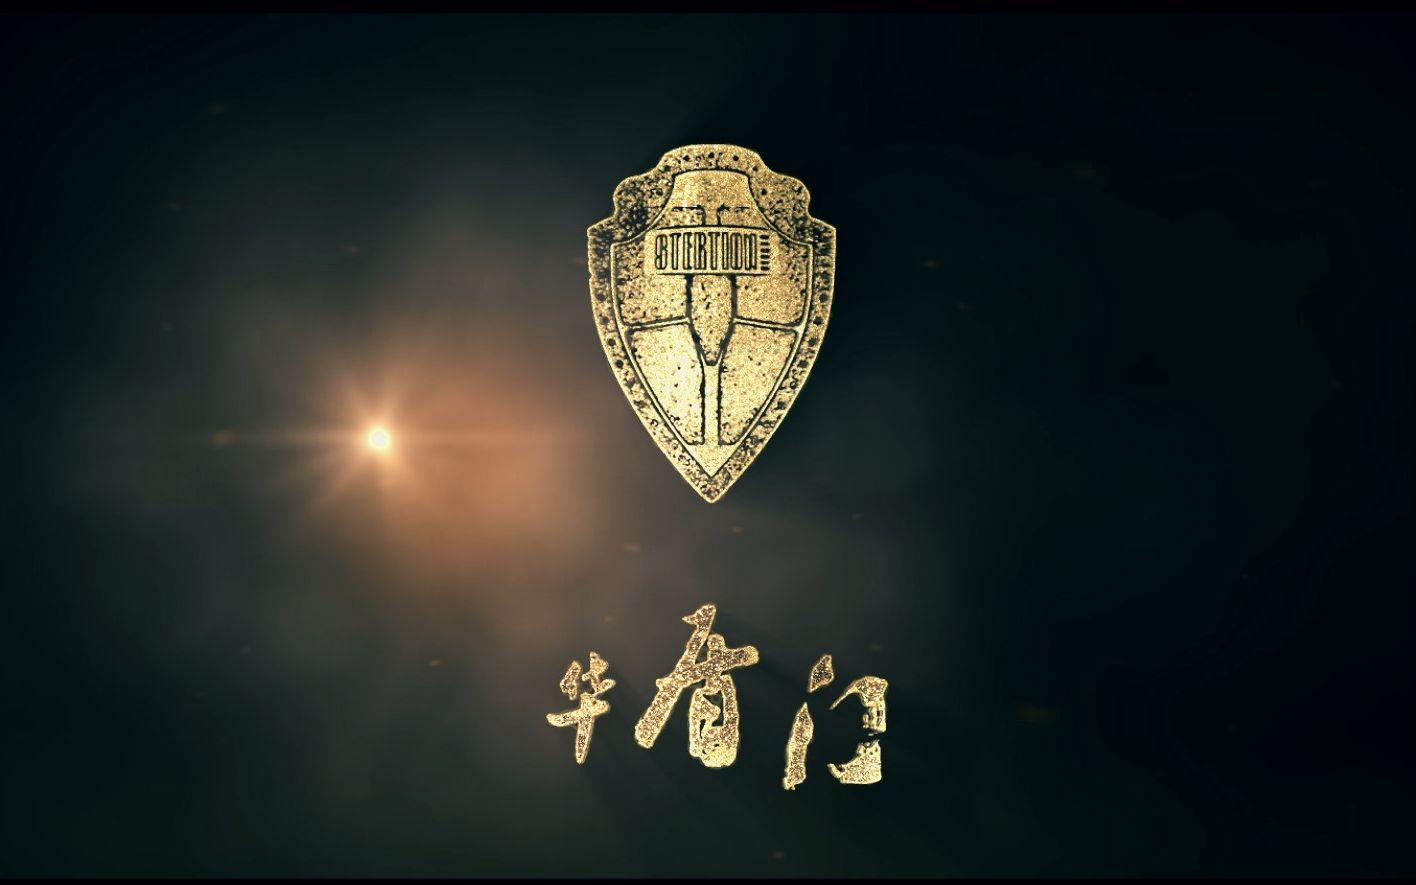 【华盾门】 The.SHIELDMEN.2017.S01E01.1080p.IMAX